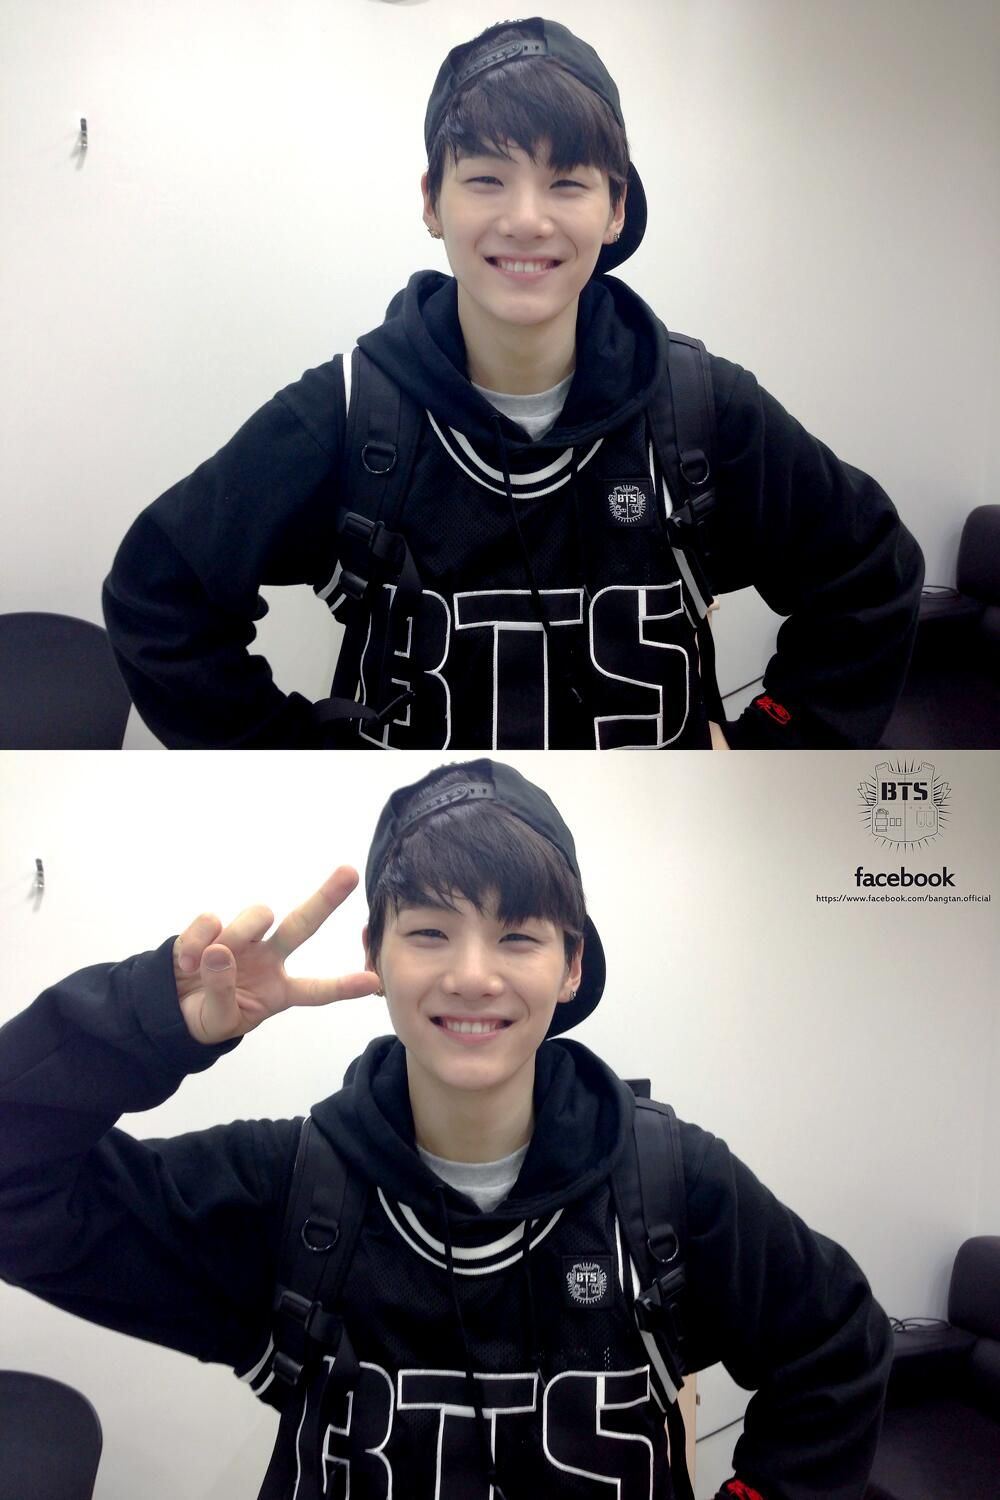 Bangtan Boy's Suga  Most favourite member (although I don't often fangirl him a lot) xD